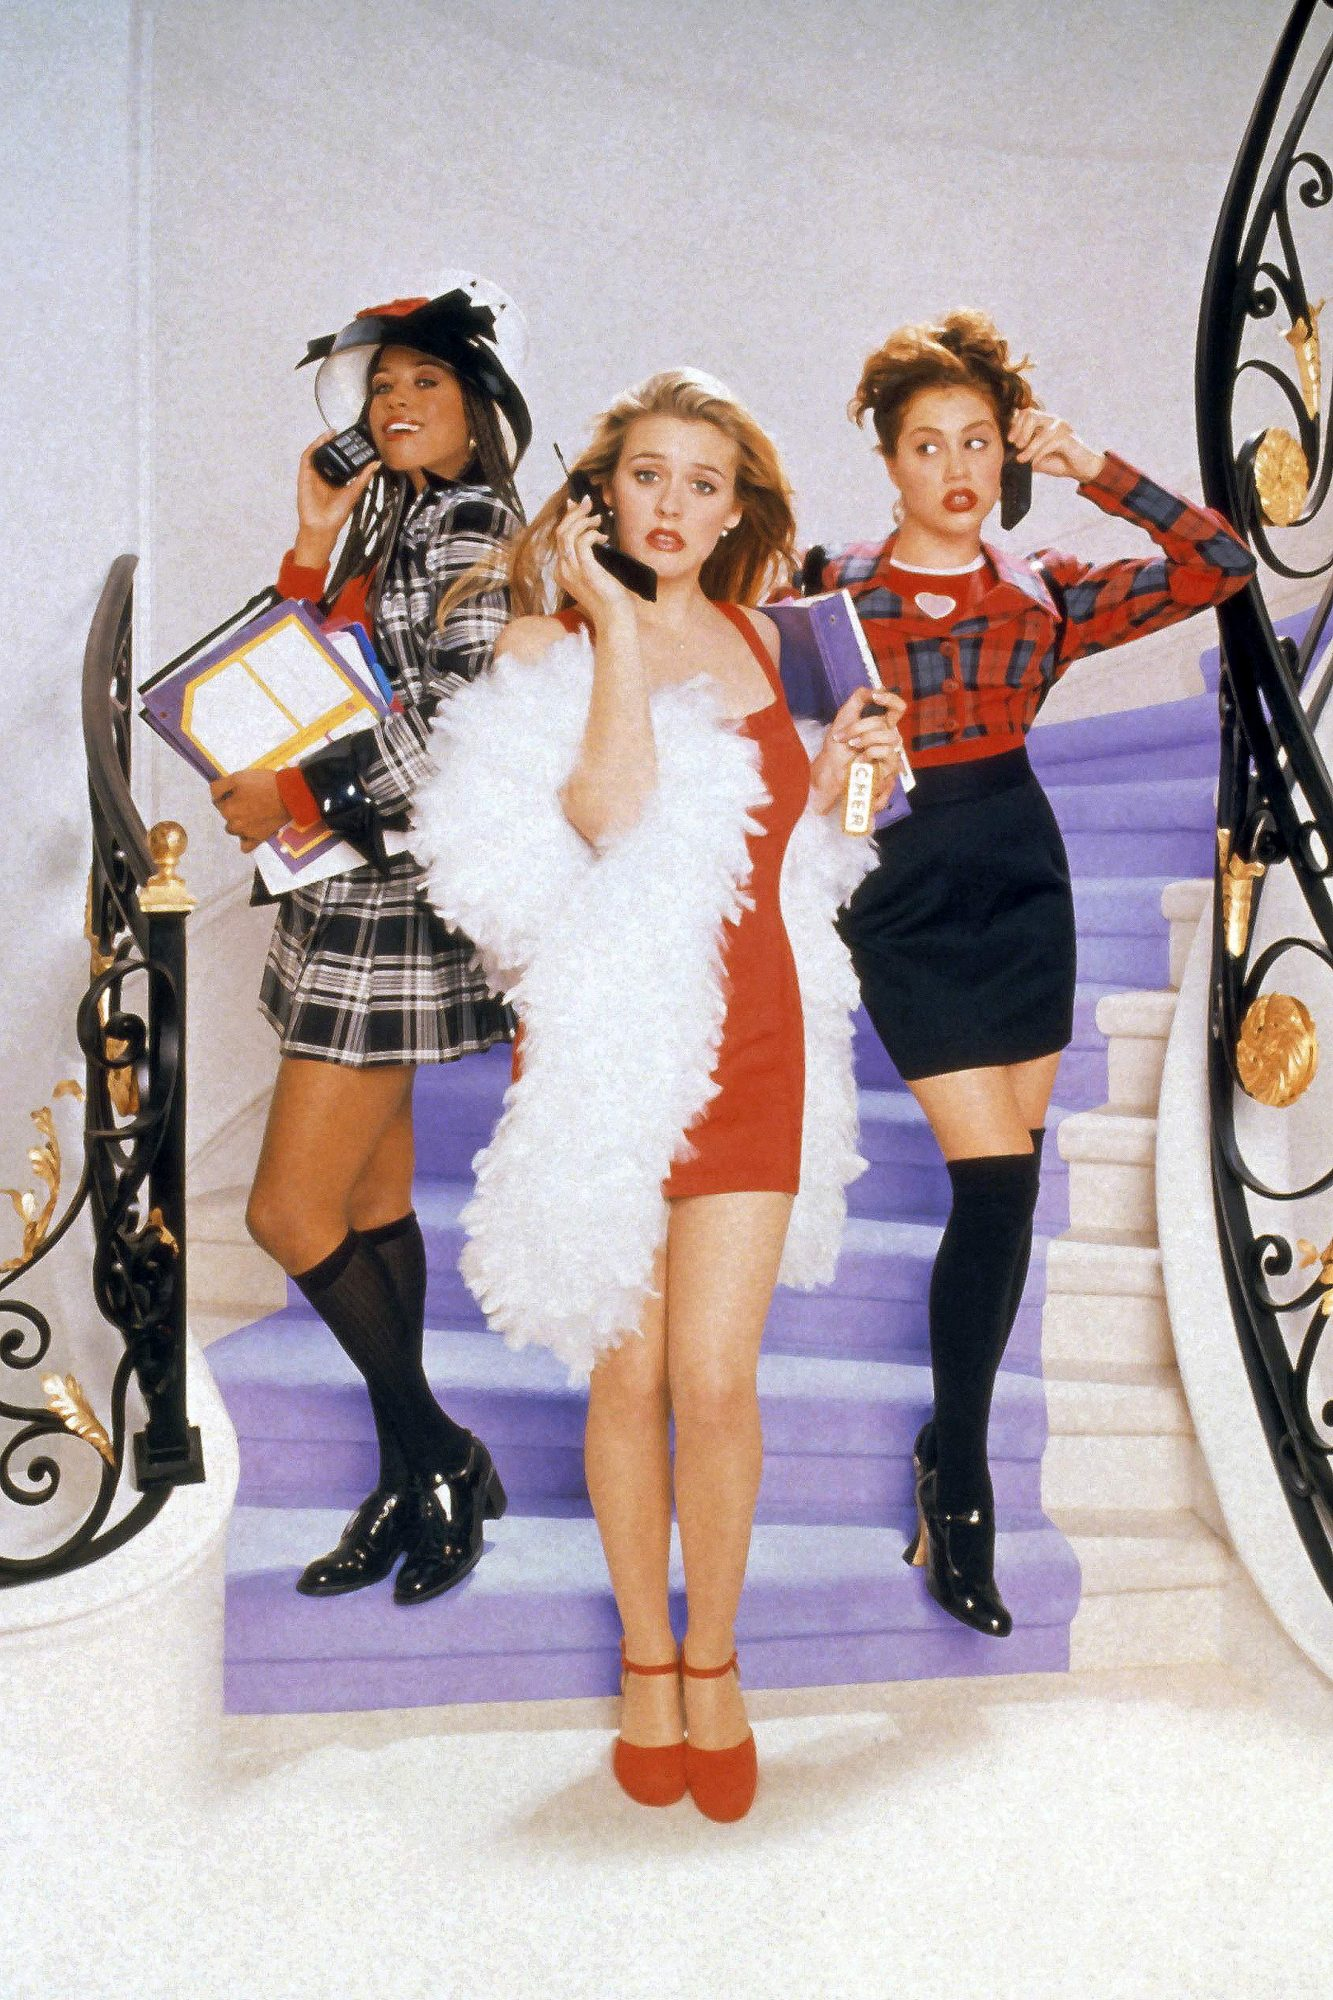 CLUELESS, Stacey Dash, Alicia Silverstone, Brittany Murphy, 1995, (c) Paramount/courtesy Everett Col